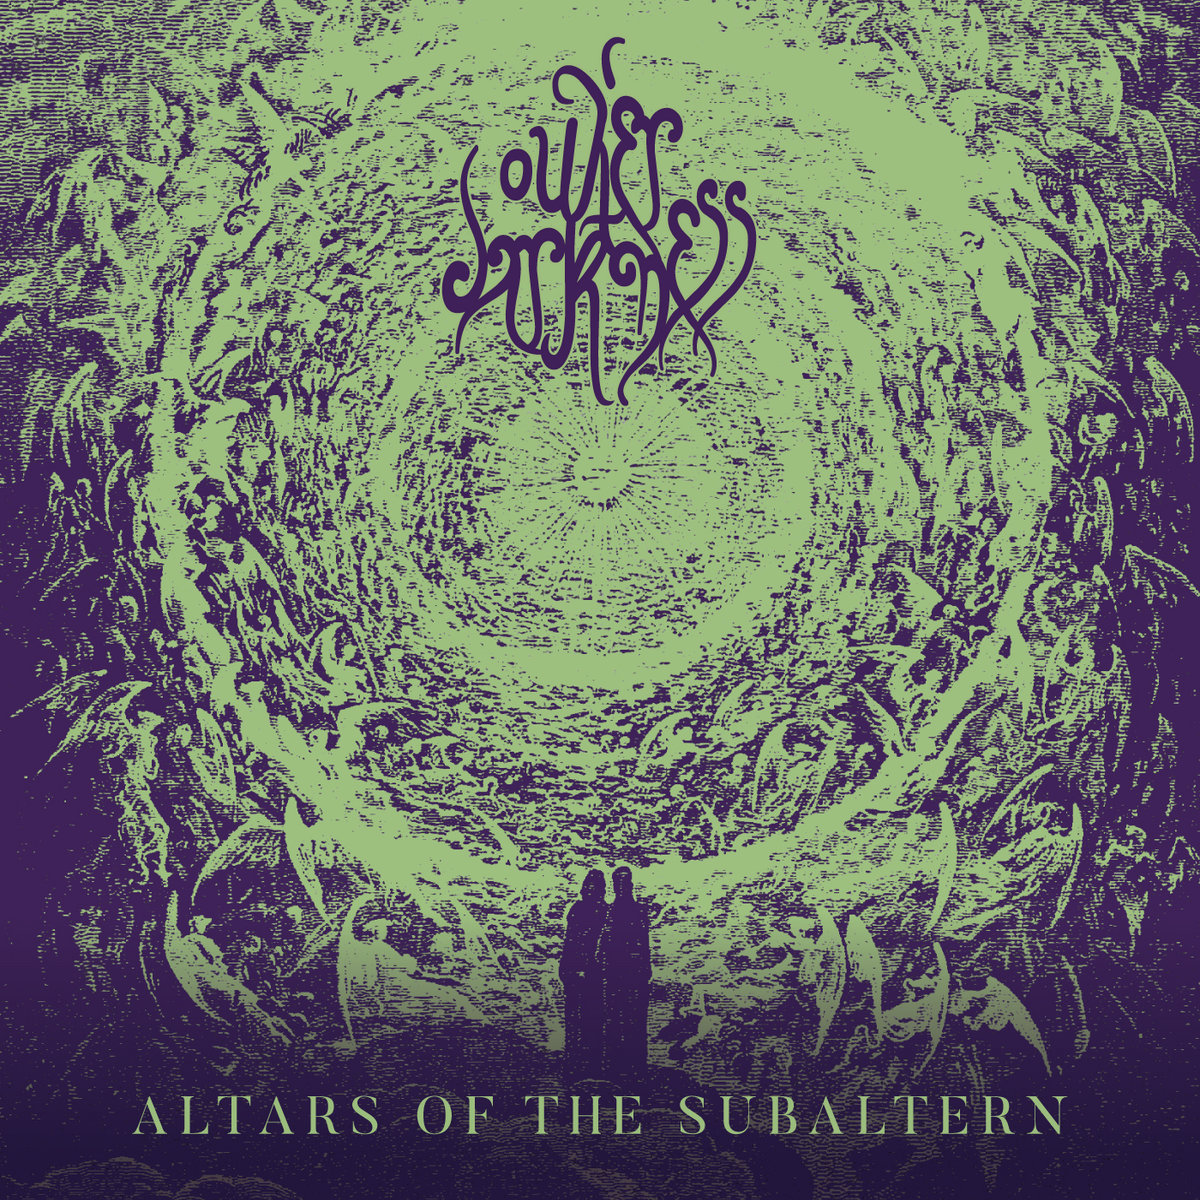 https://outerdarkness.bandcamp.com/album/altars-of-the-subaltern